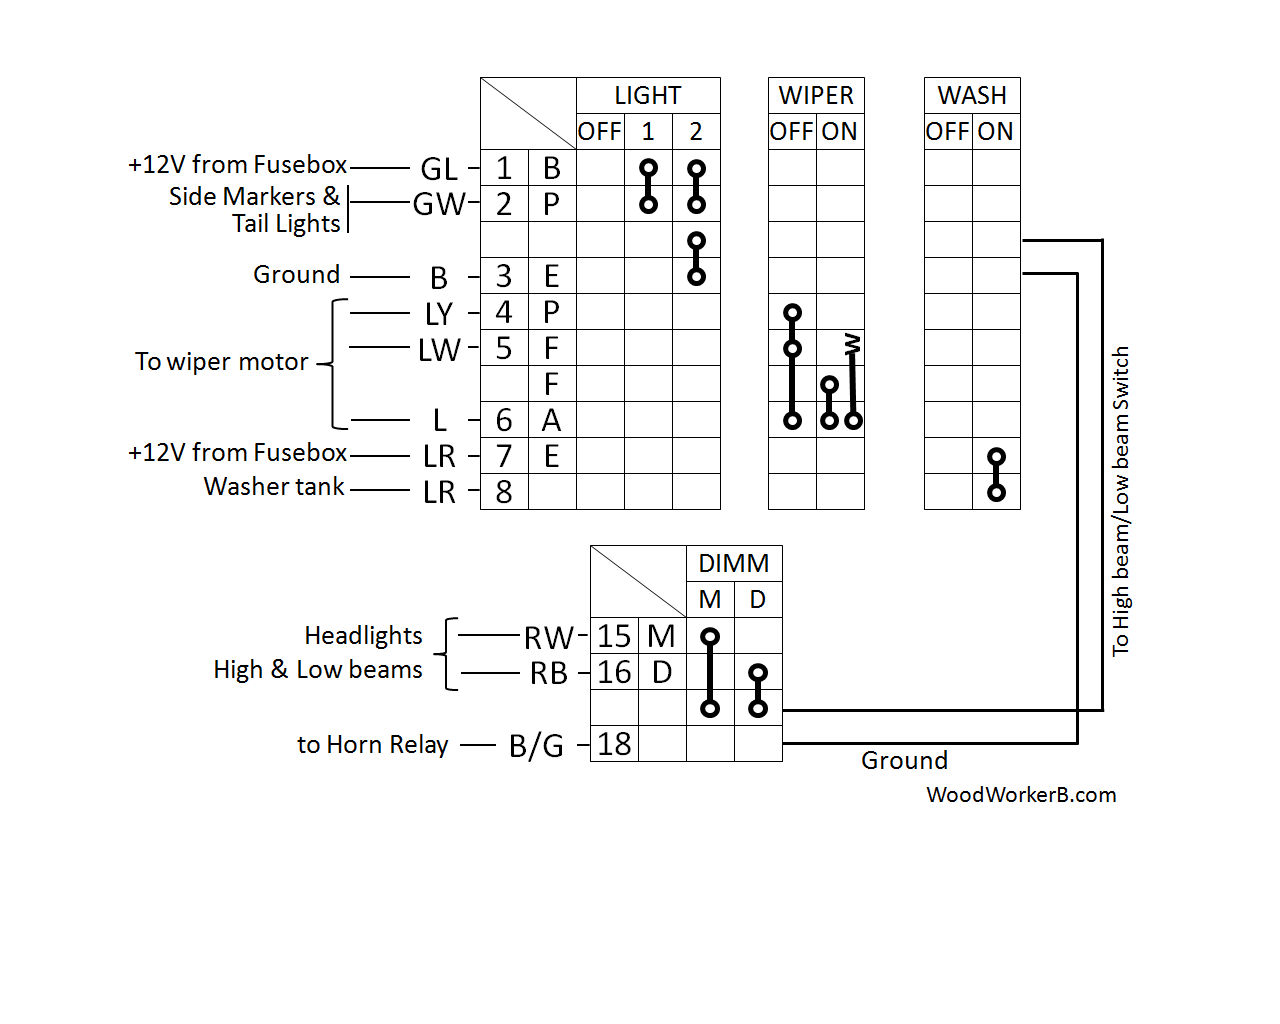 240z Multifunction Switches Woodworkerb Rheostat Switch Wiring Diagram